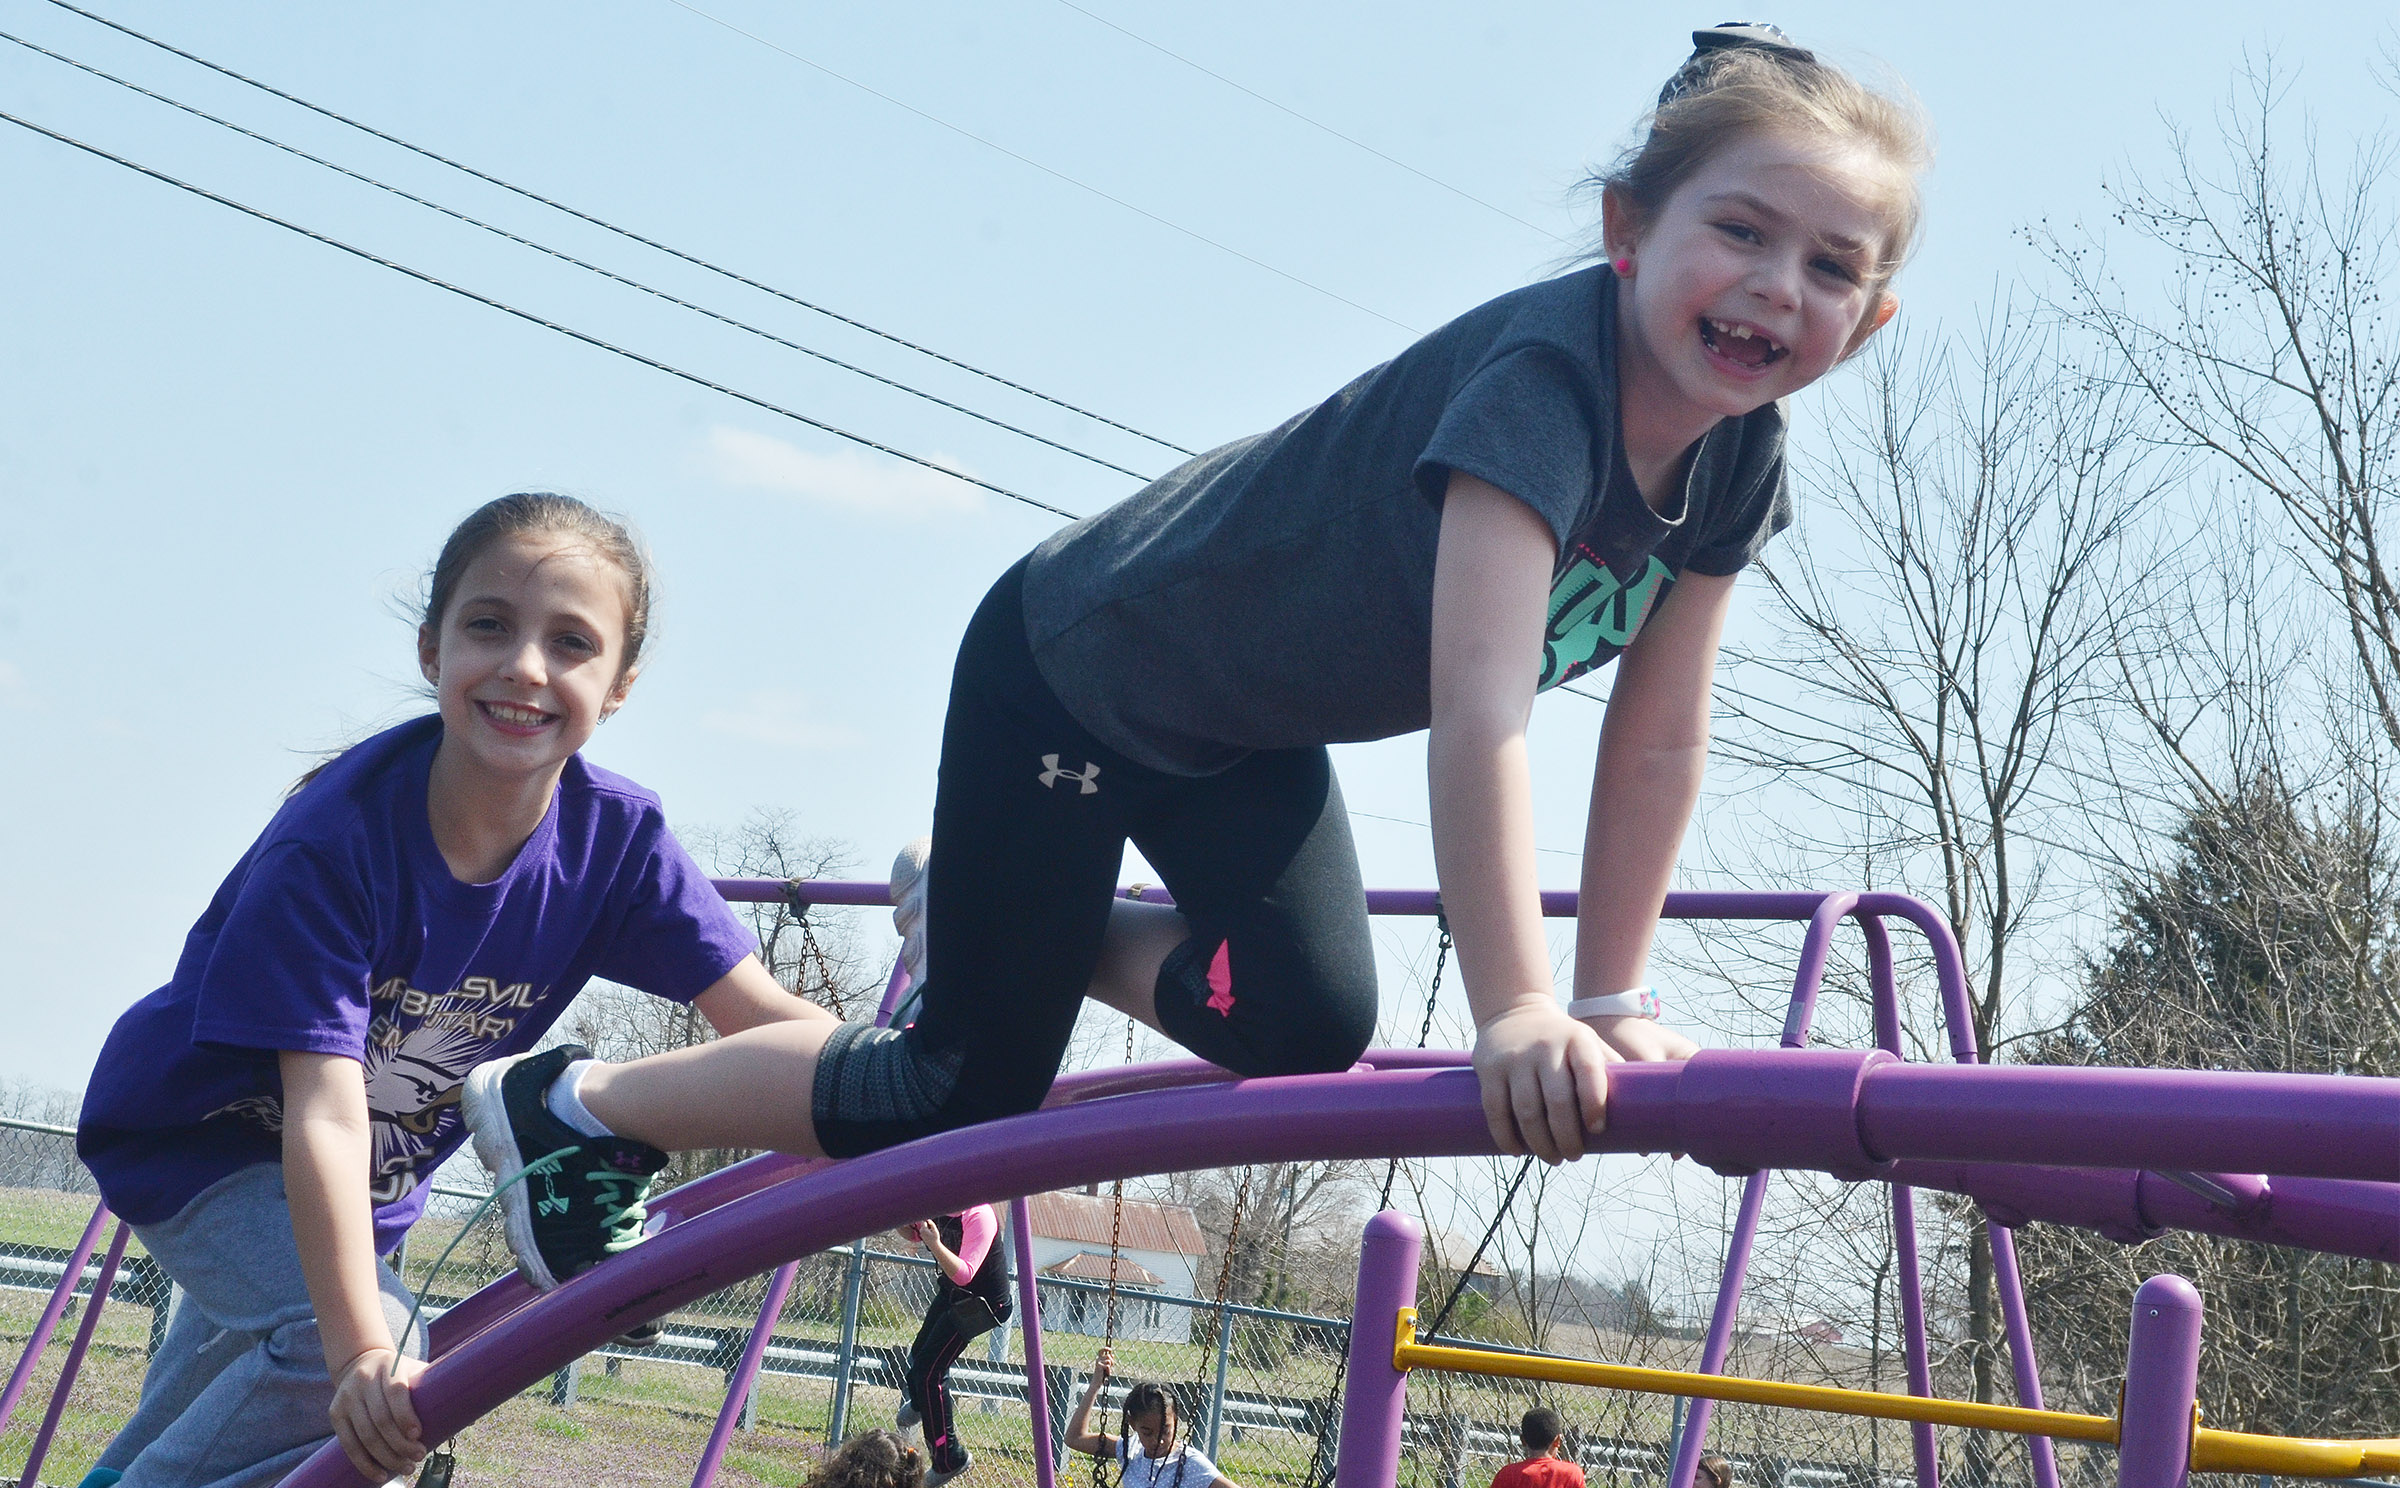 CES first-graders Lillian Martin, at left, and Lainey Price climb together.